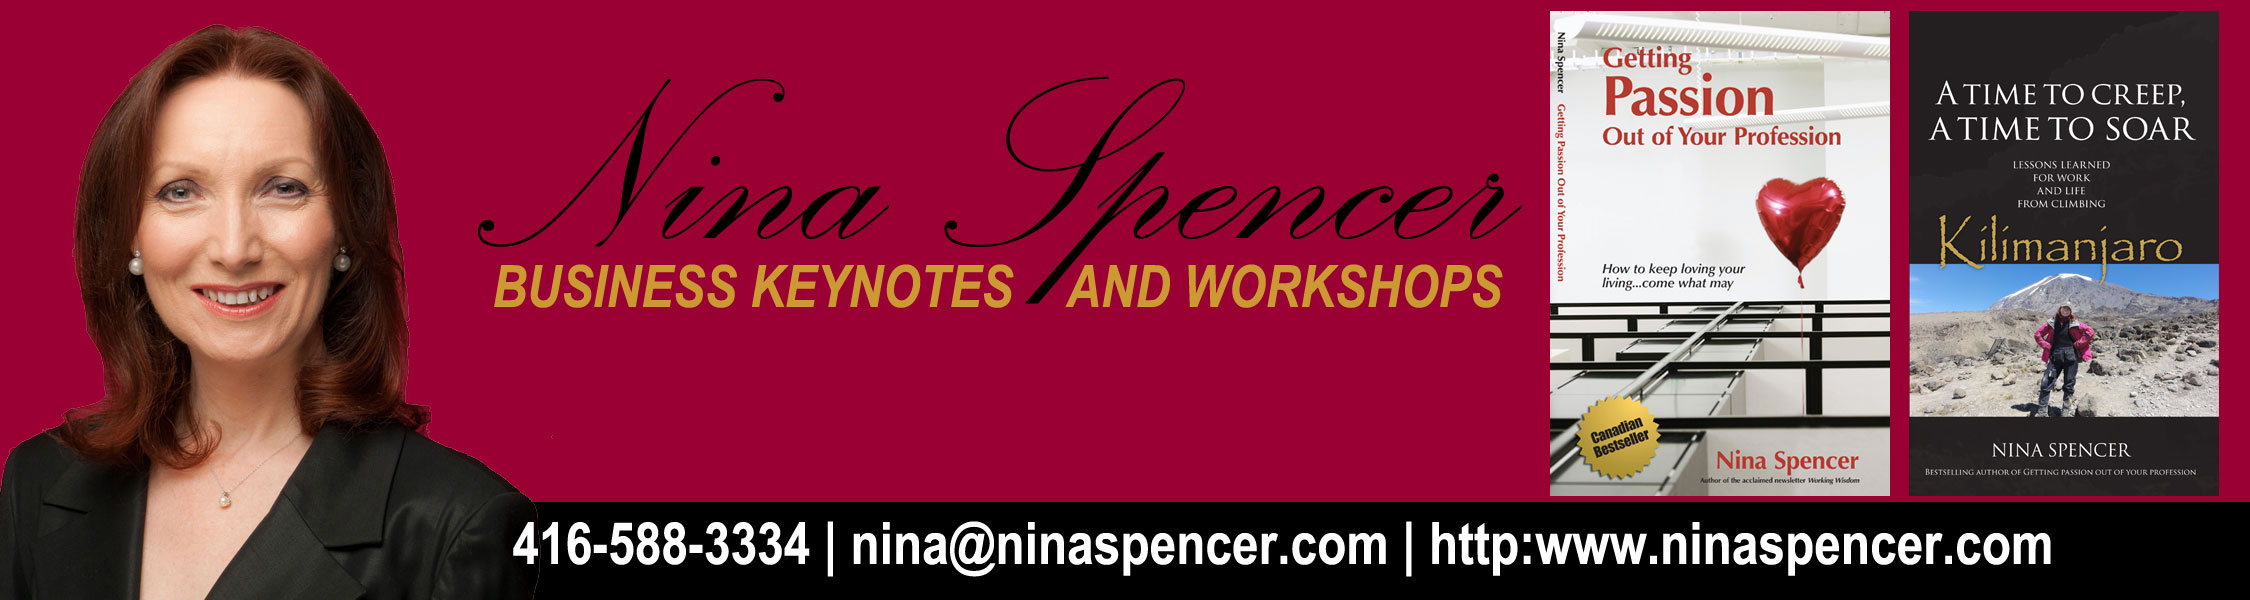 Nina Spencer, Canadian Motivational Keynote Speaker